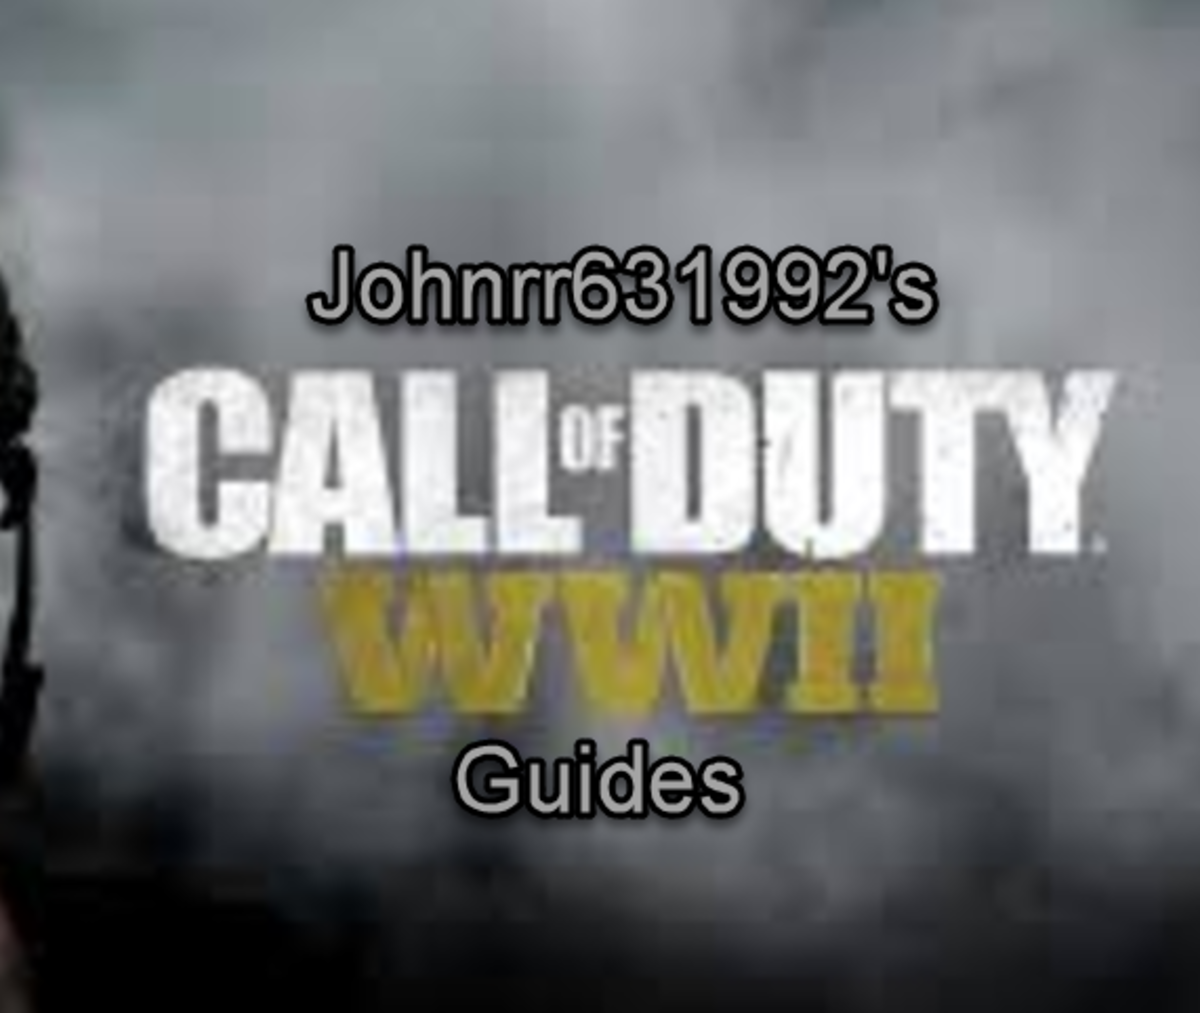 Call of Duty WWII: War Tips and Strategy Guide